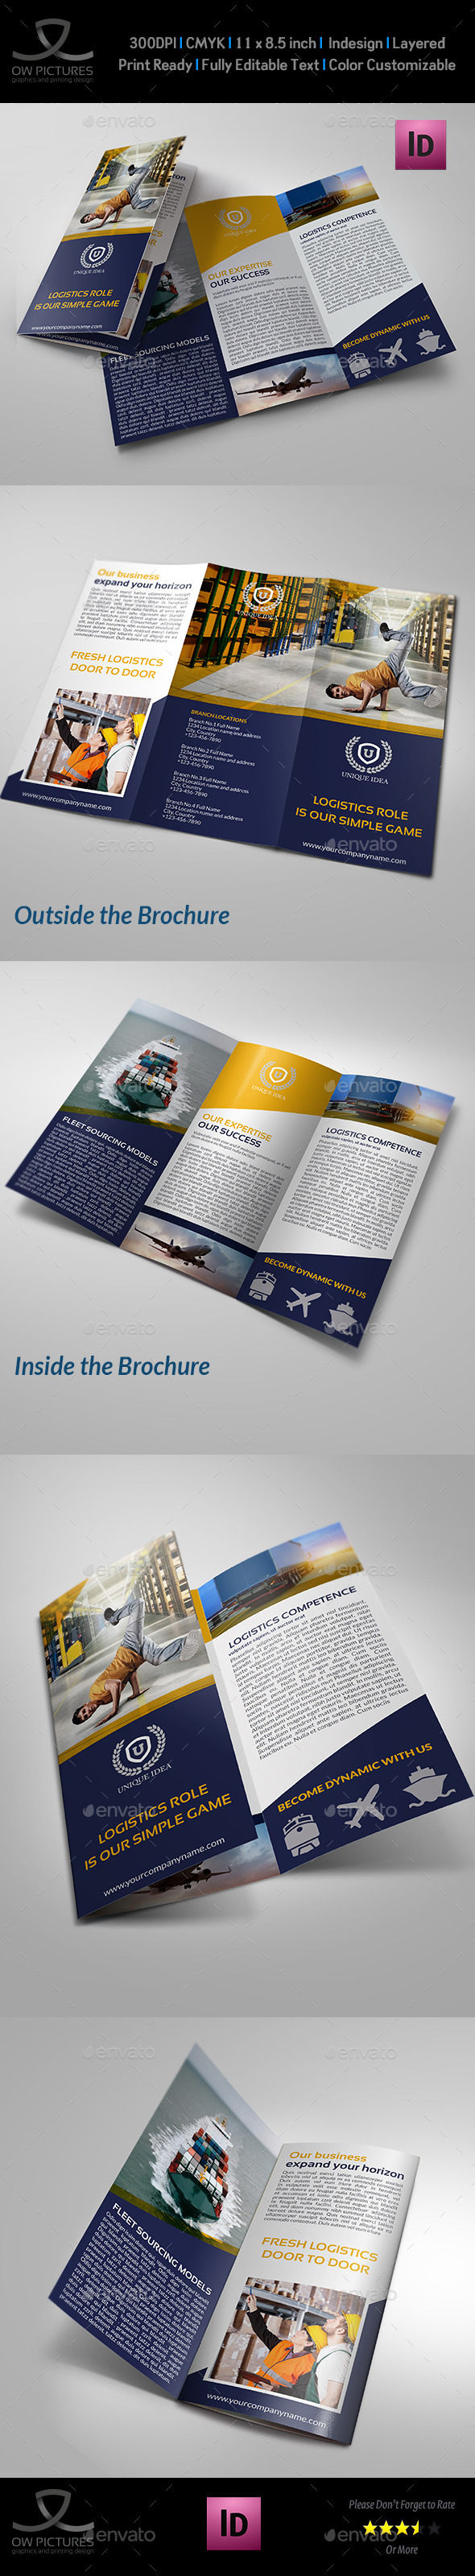 Logistic Services Tri-Fold Brochure Template Vol2 - Corporate Brochures